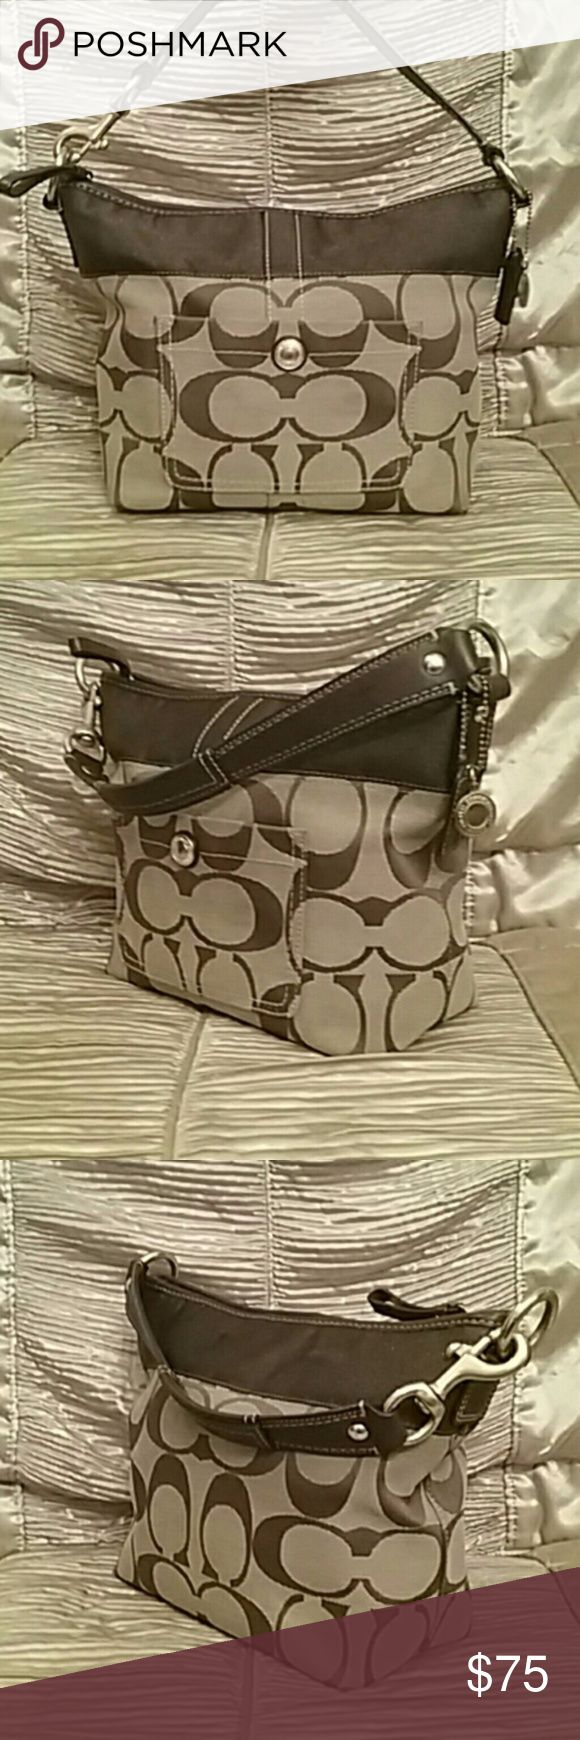 Coach Legacy Large C's Signature Handbag #11957 Authentic Coach Legacy Purse. Leather trim, classic coach signature canvas, excellent condition, Beautiful handbag!  Smoke and pet free home. Coach Bags